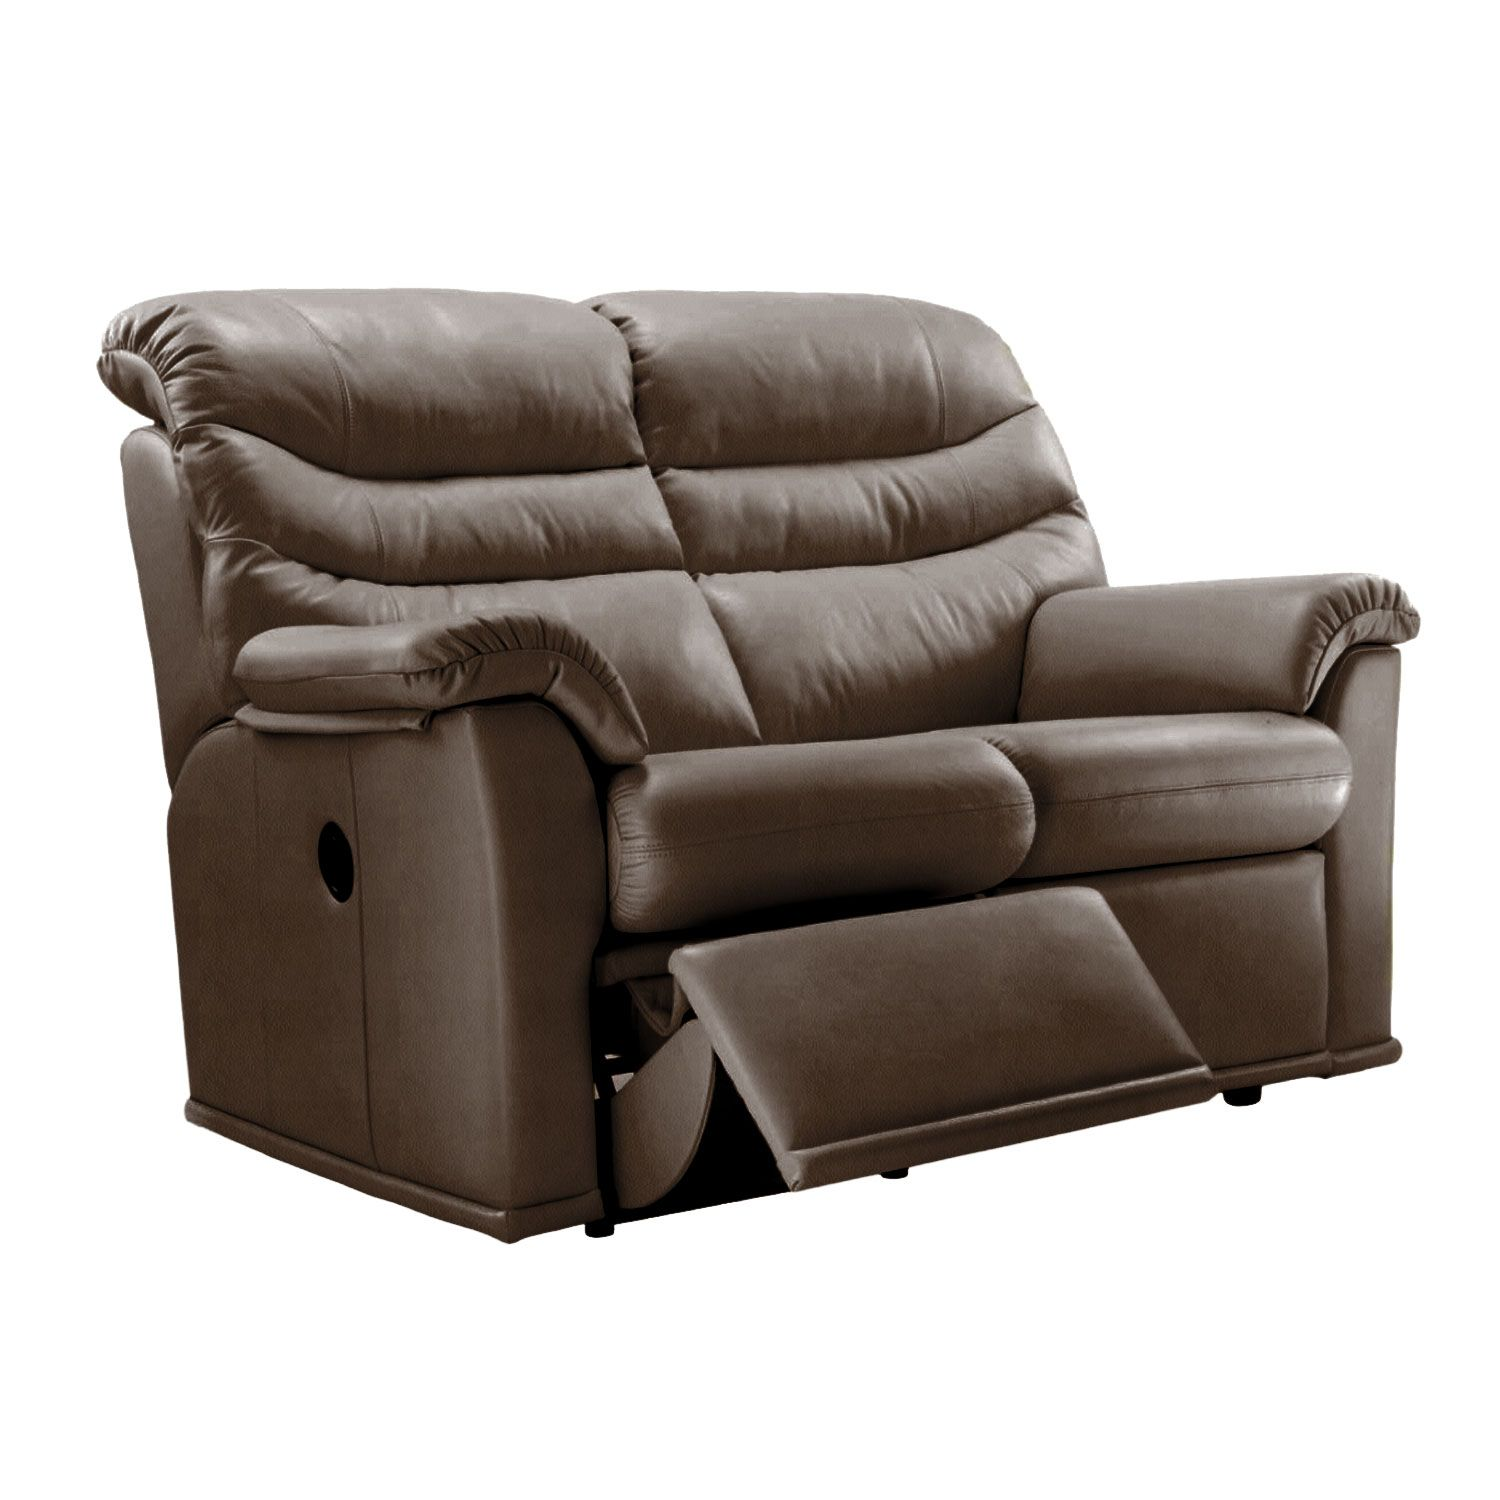 G Plan Malvern 17 2 Seater Double Power Recliner Leather Sofa